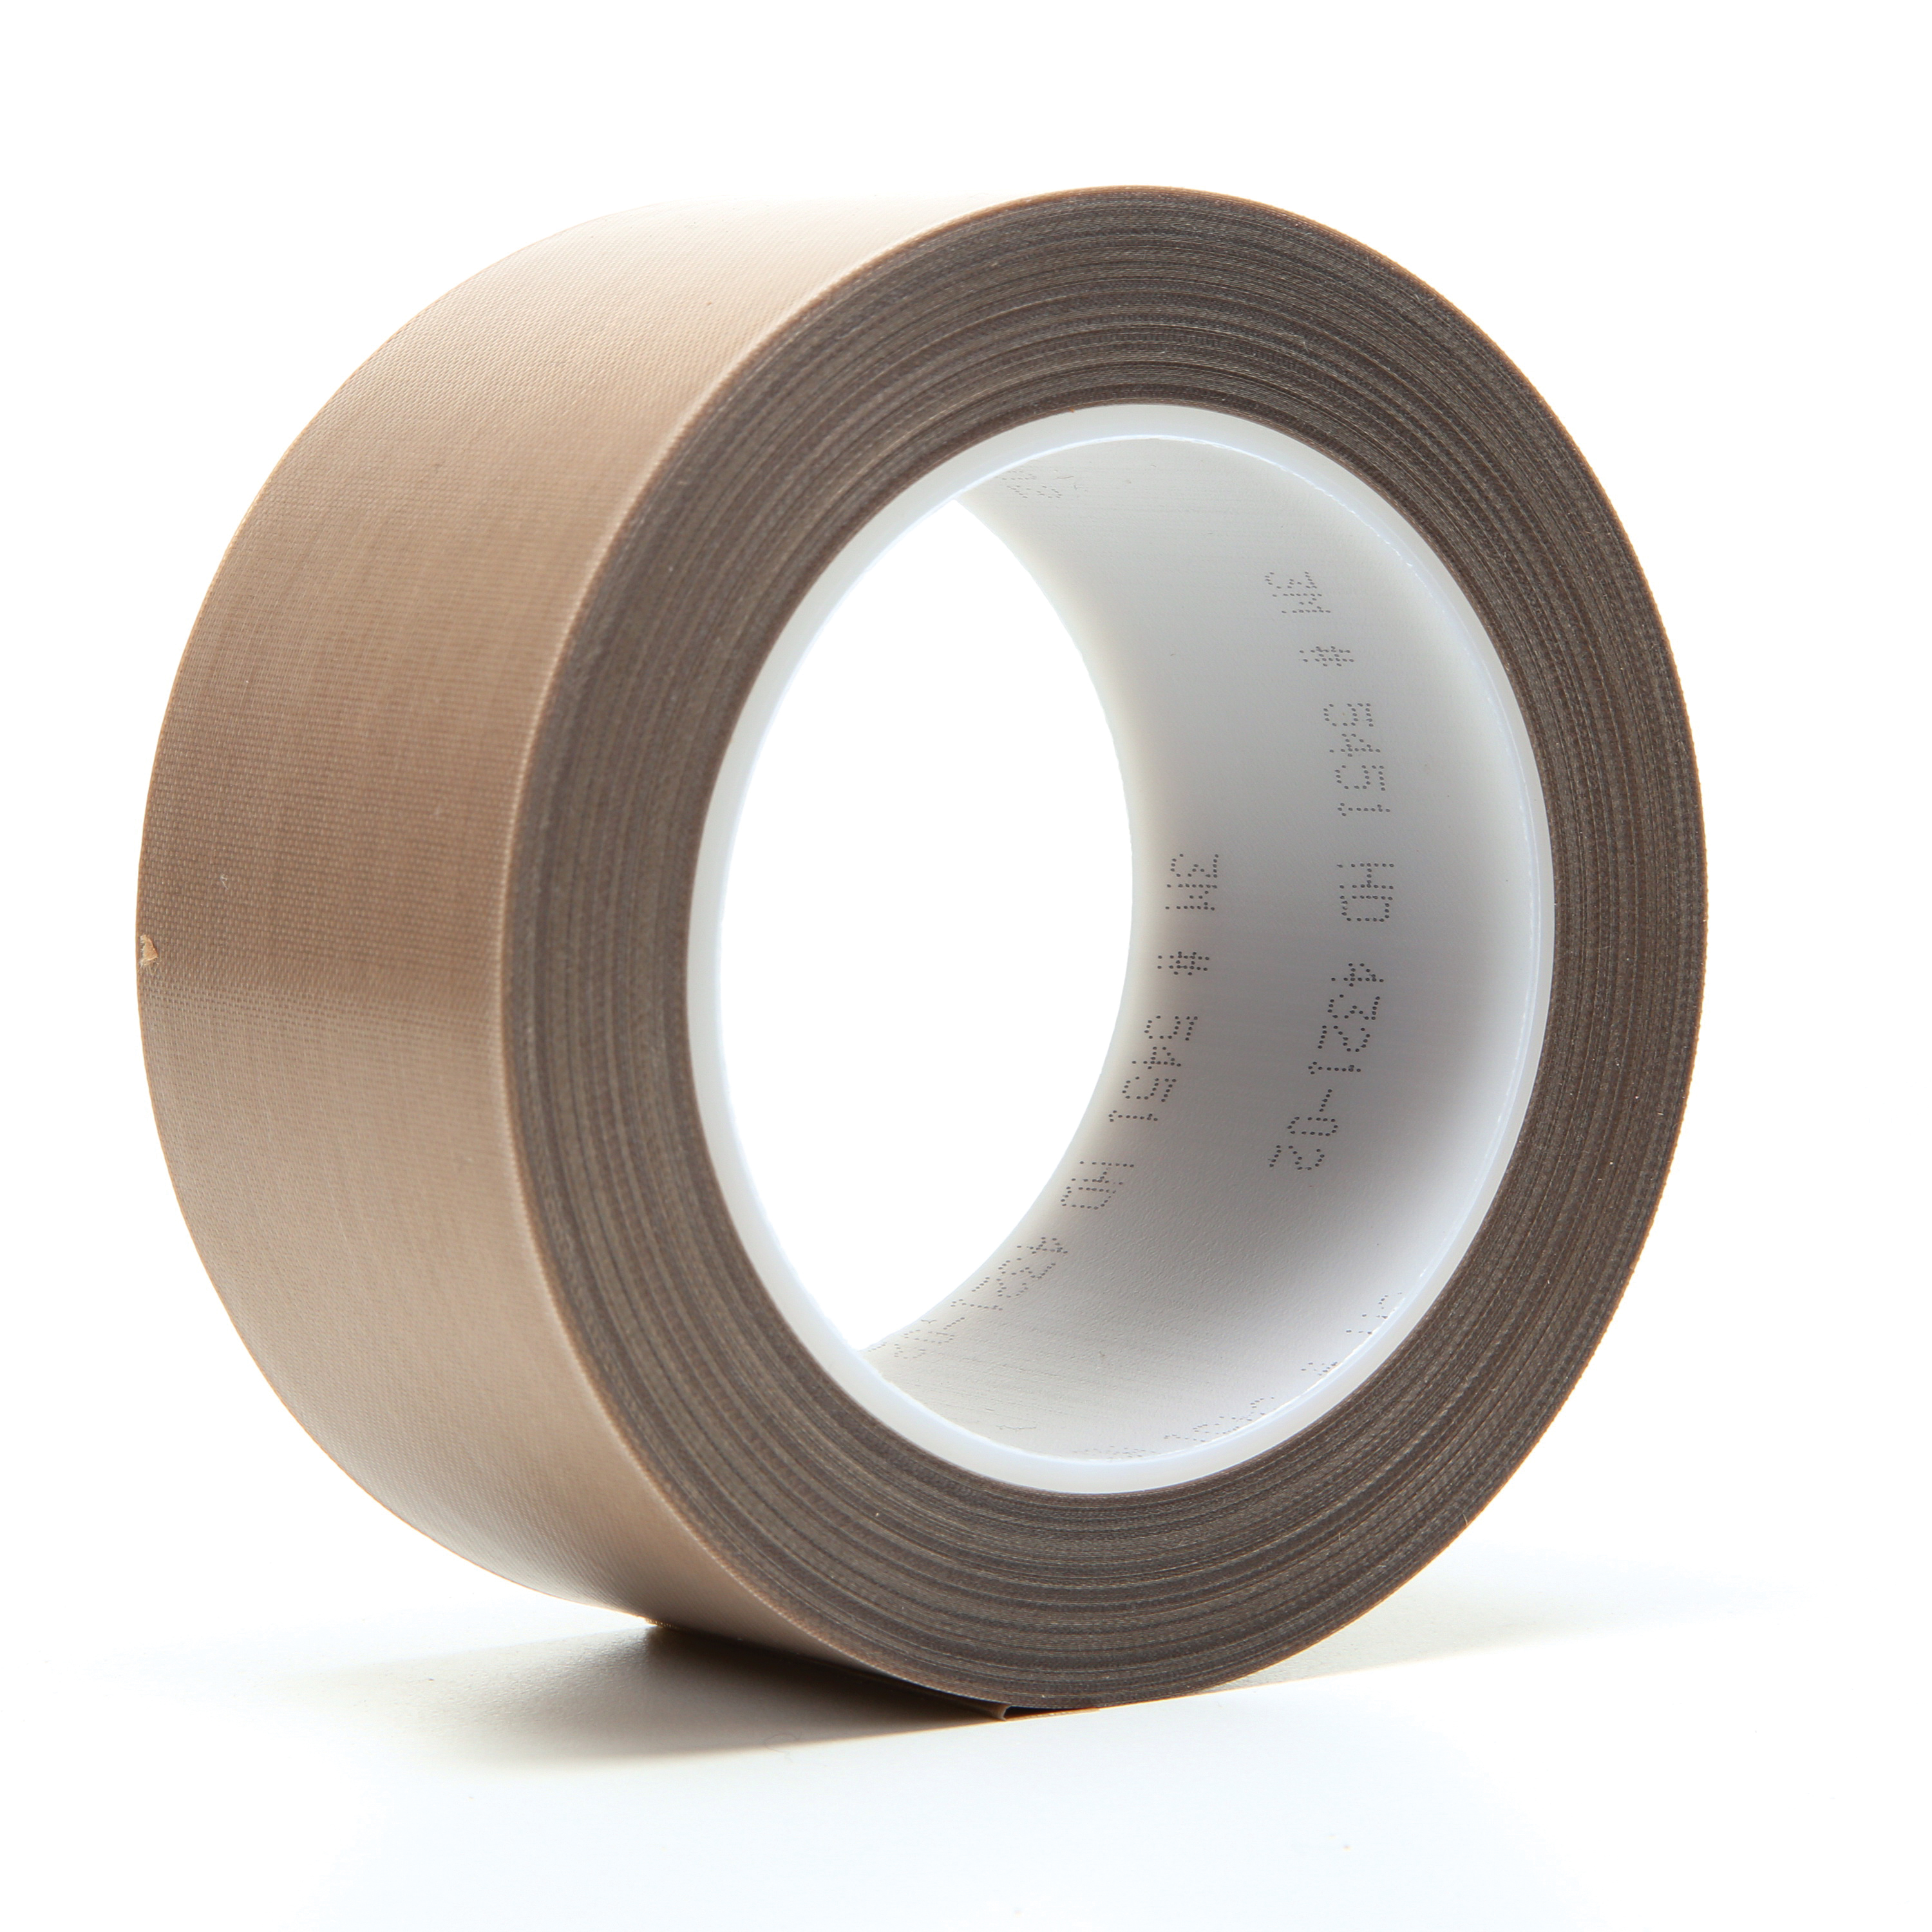 3M™ 021200-16154 Pressure Sensitive Glass Cloth Tape, 36 yd L x 2 in W, 5.6 mil THK, Silicone Adhesive, 3.2 mil Woven Glass Cloth Impregnated with PTFE Backing, Brown